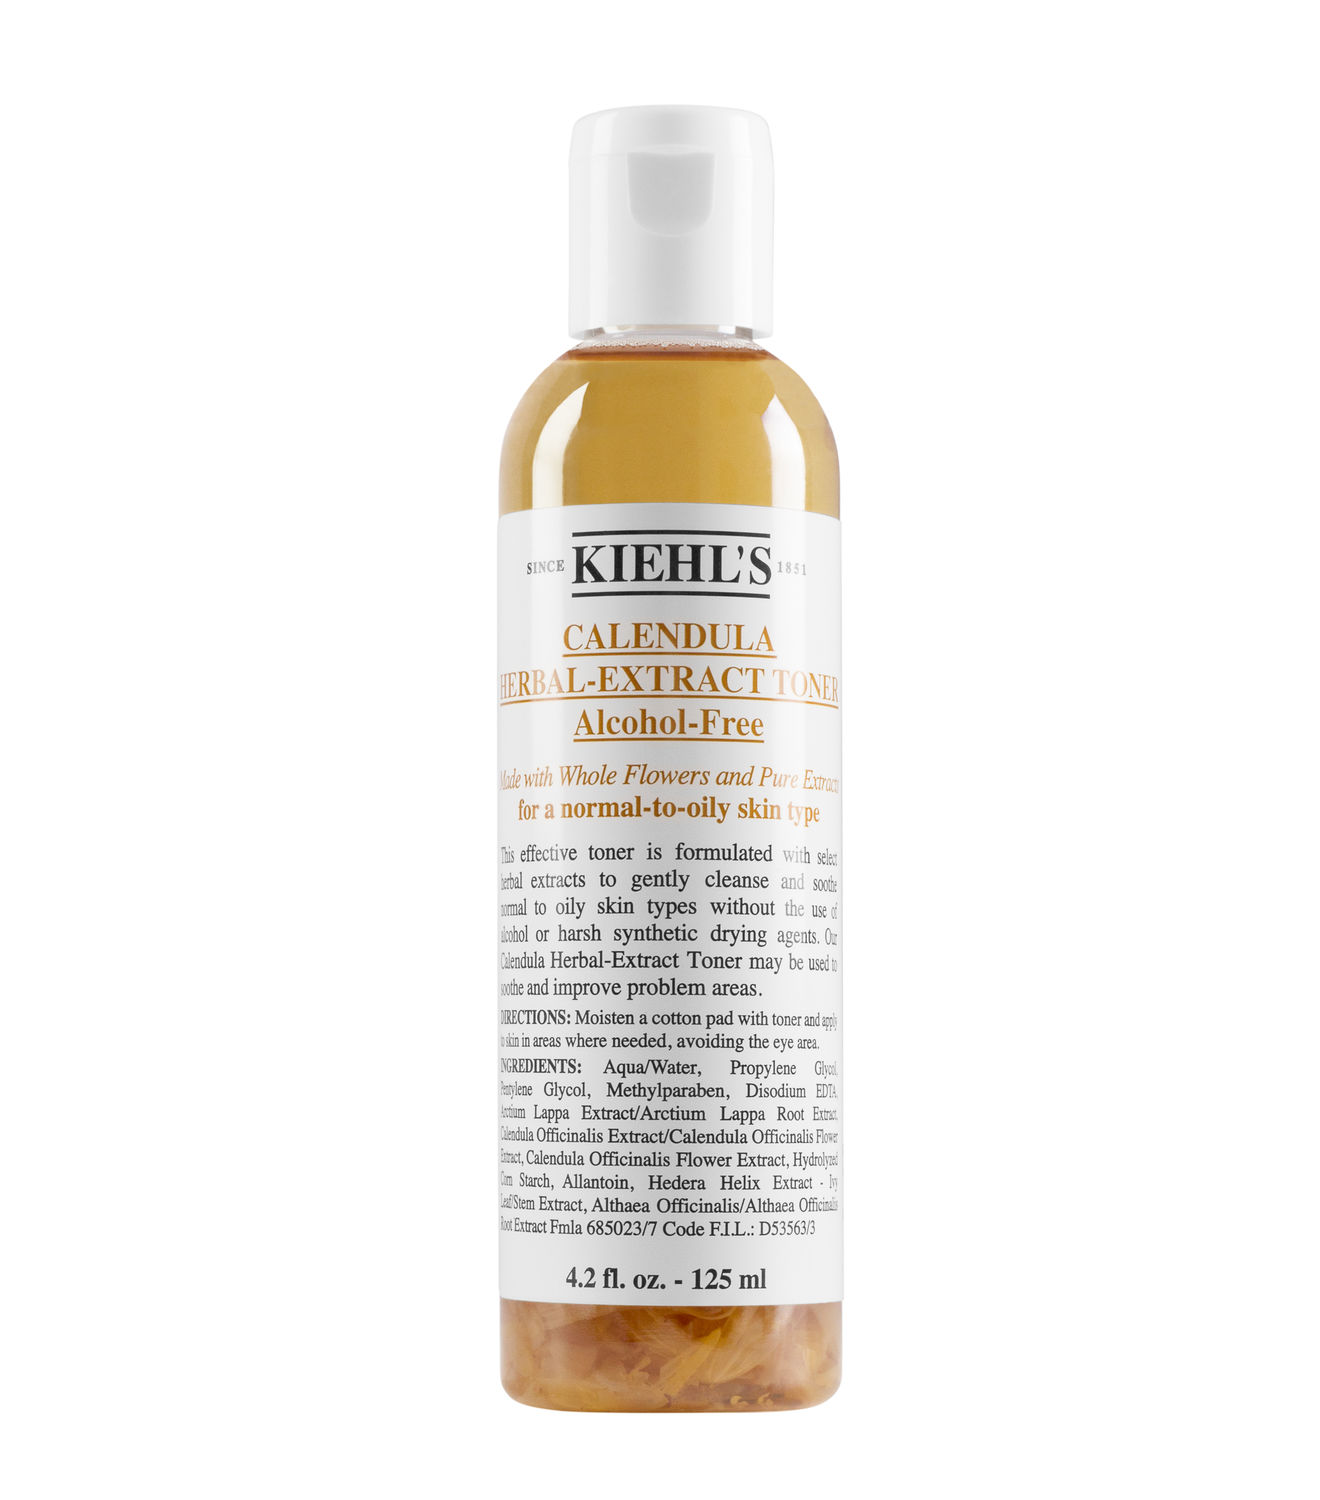 Khiels Calendula Herbal Extract Alcohol-Free Toner